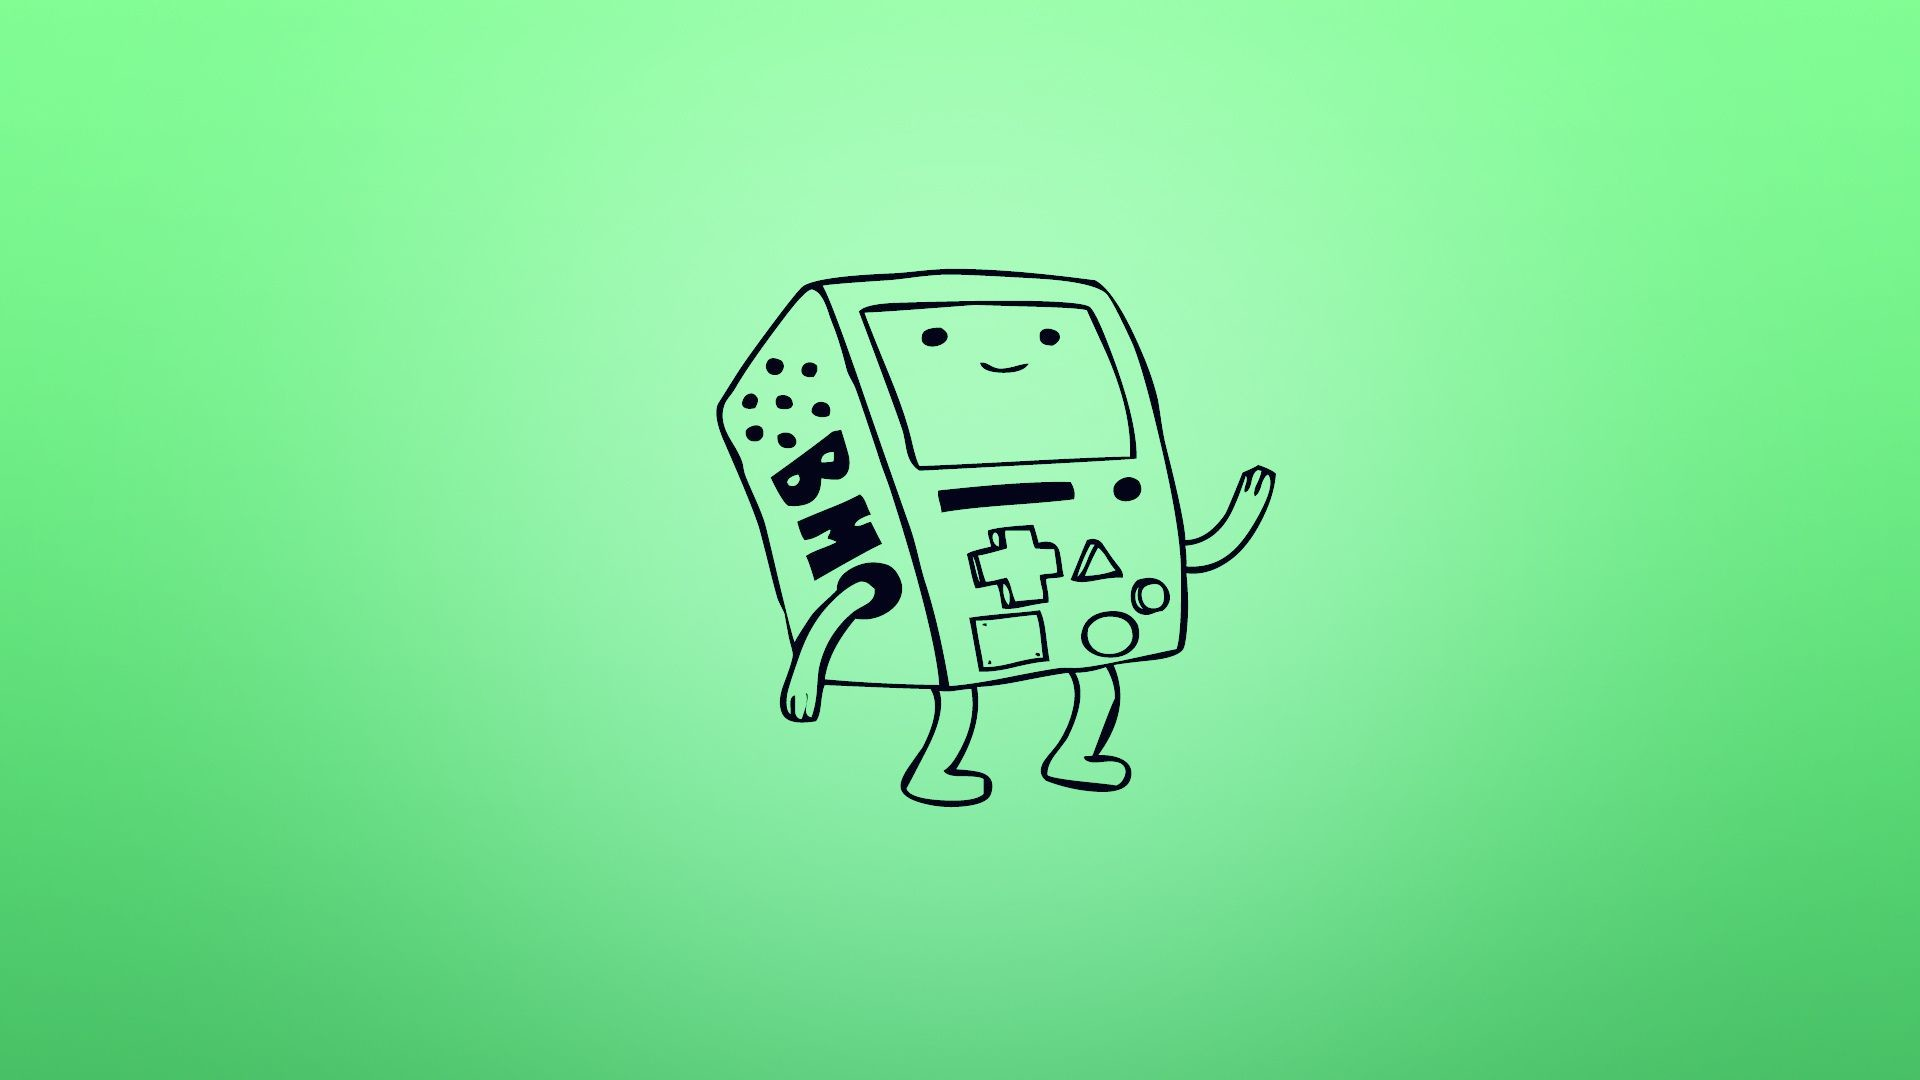 1920x1080 Download wallpaper pda, bimo, adventure time, bmo, adventure time .